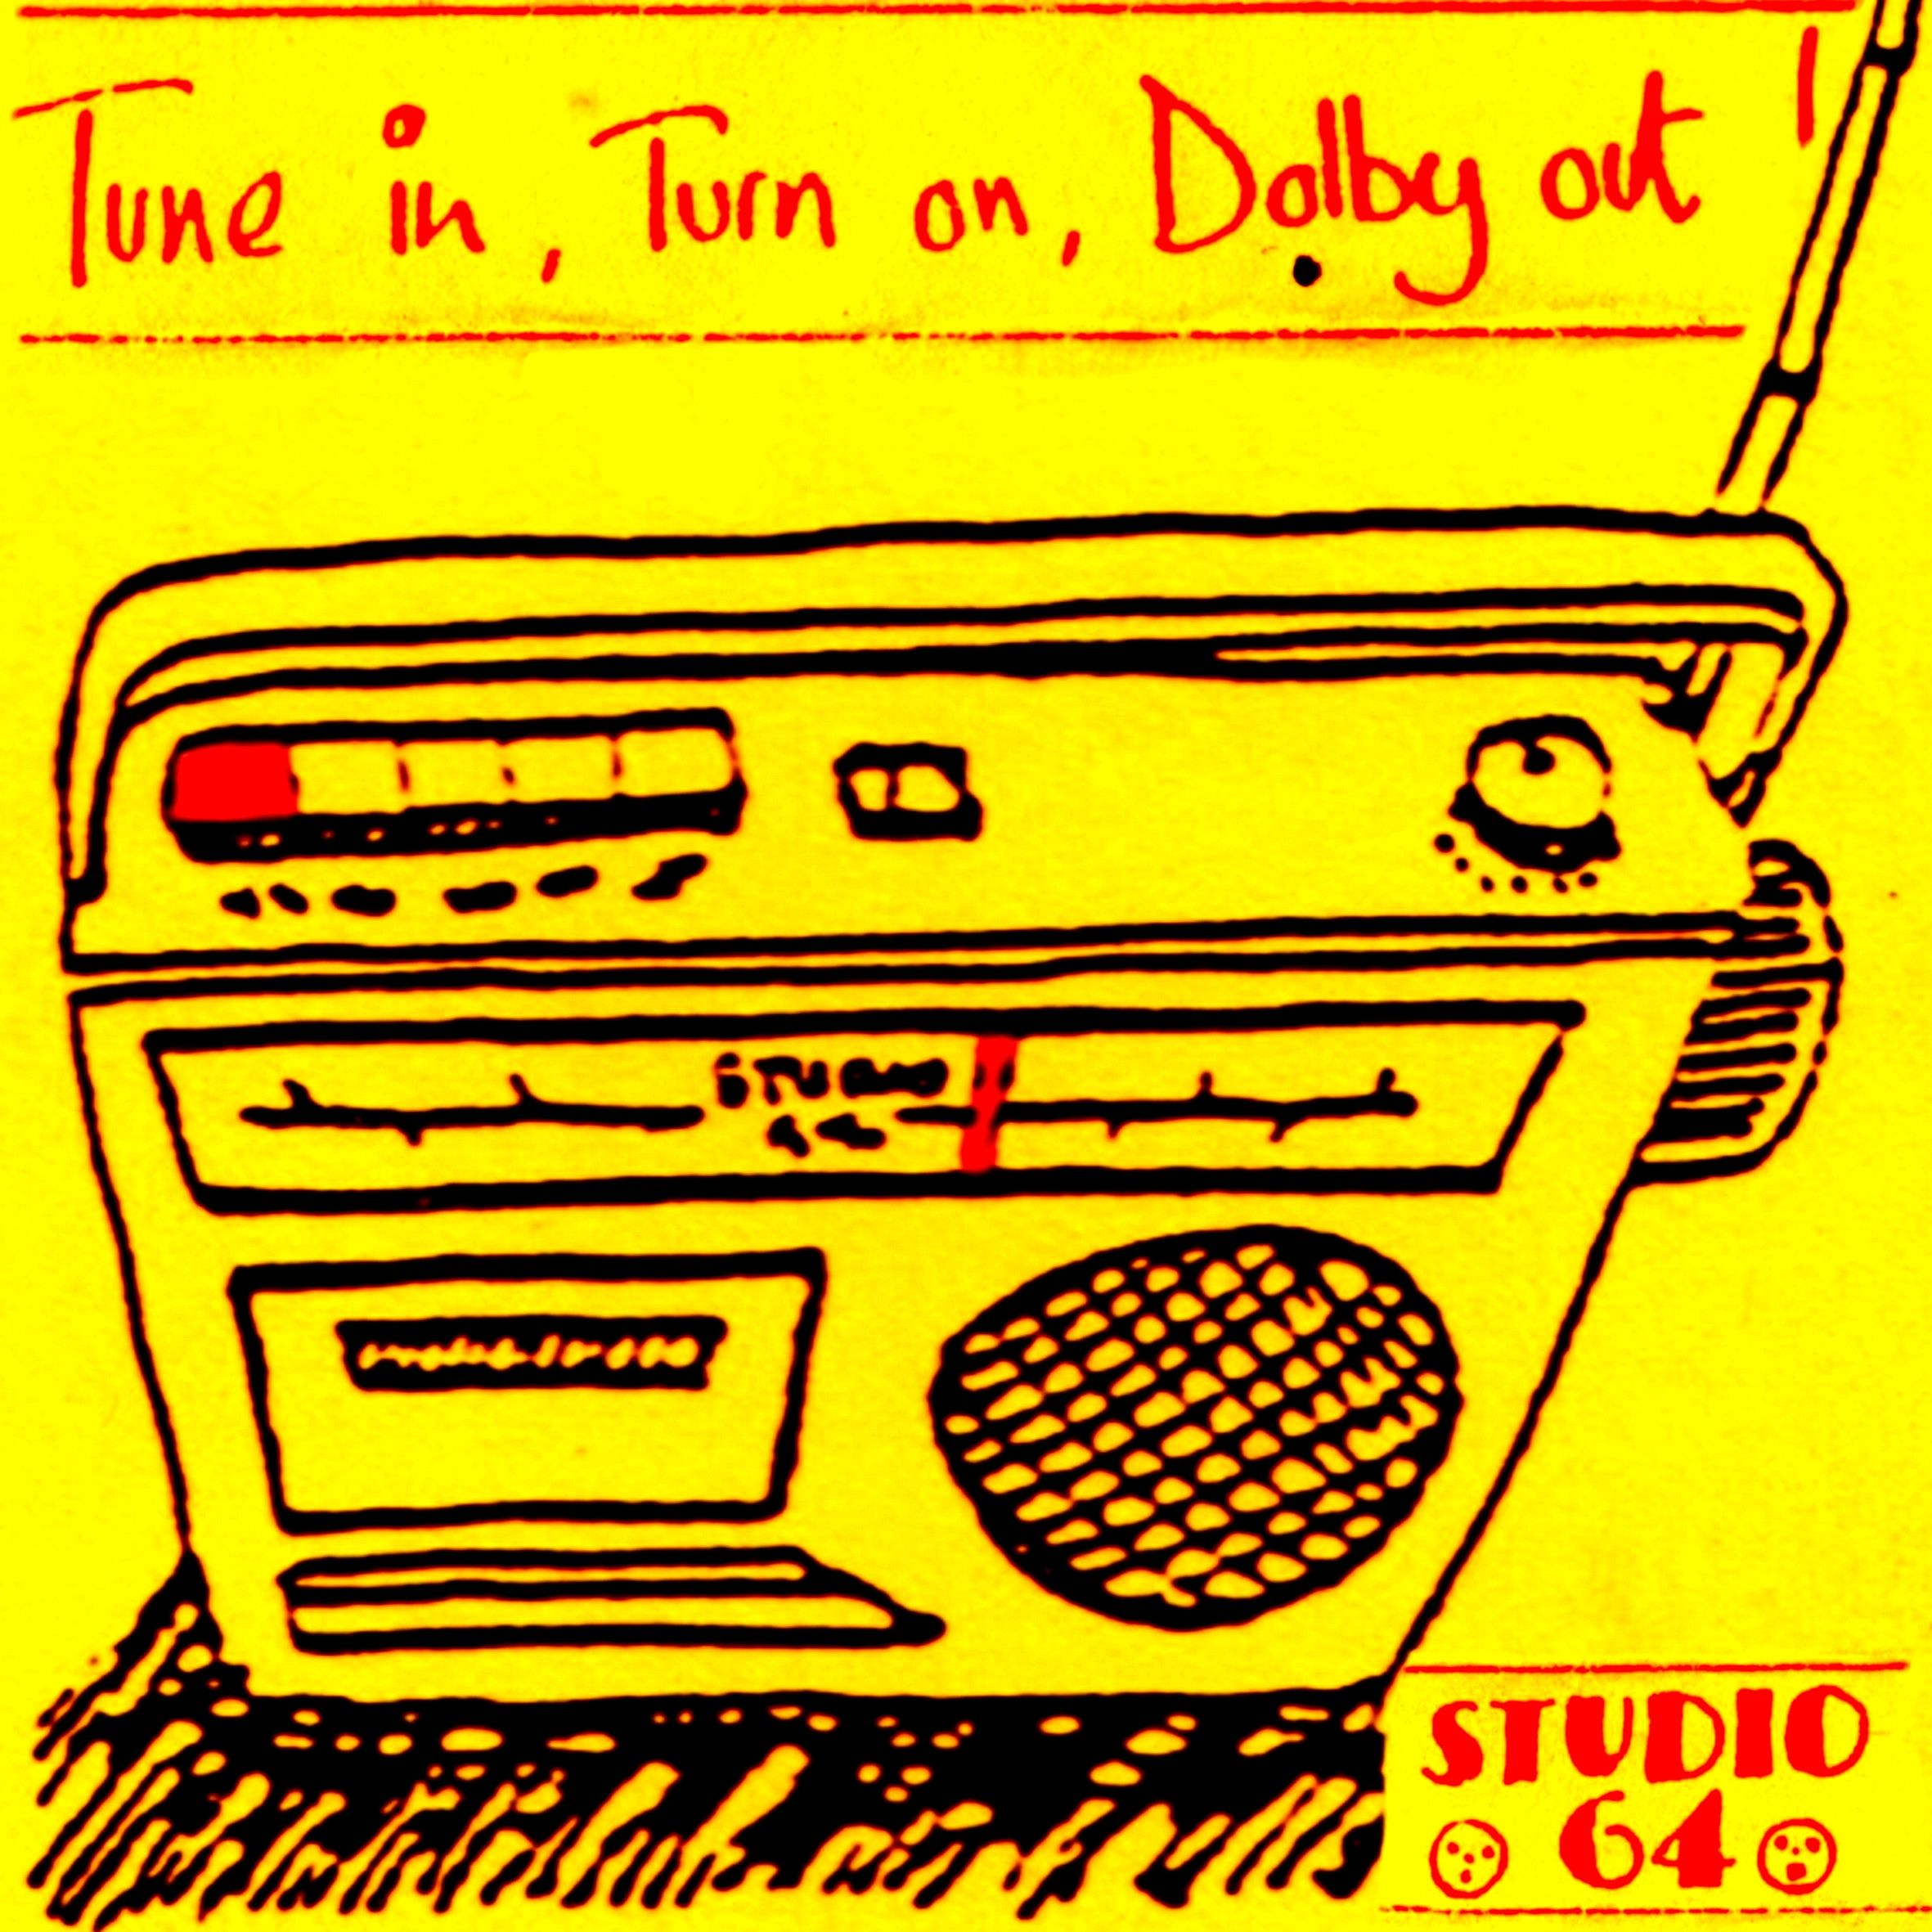 Studio 64 Middlesbrough - Turn On, Tune In, Dolby Out